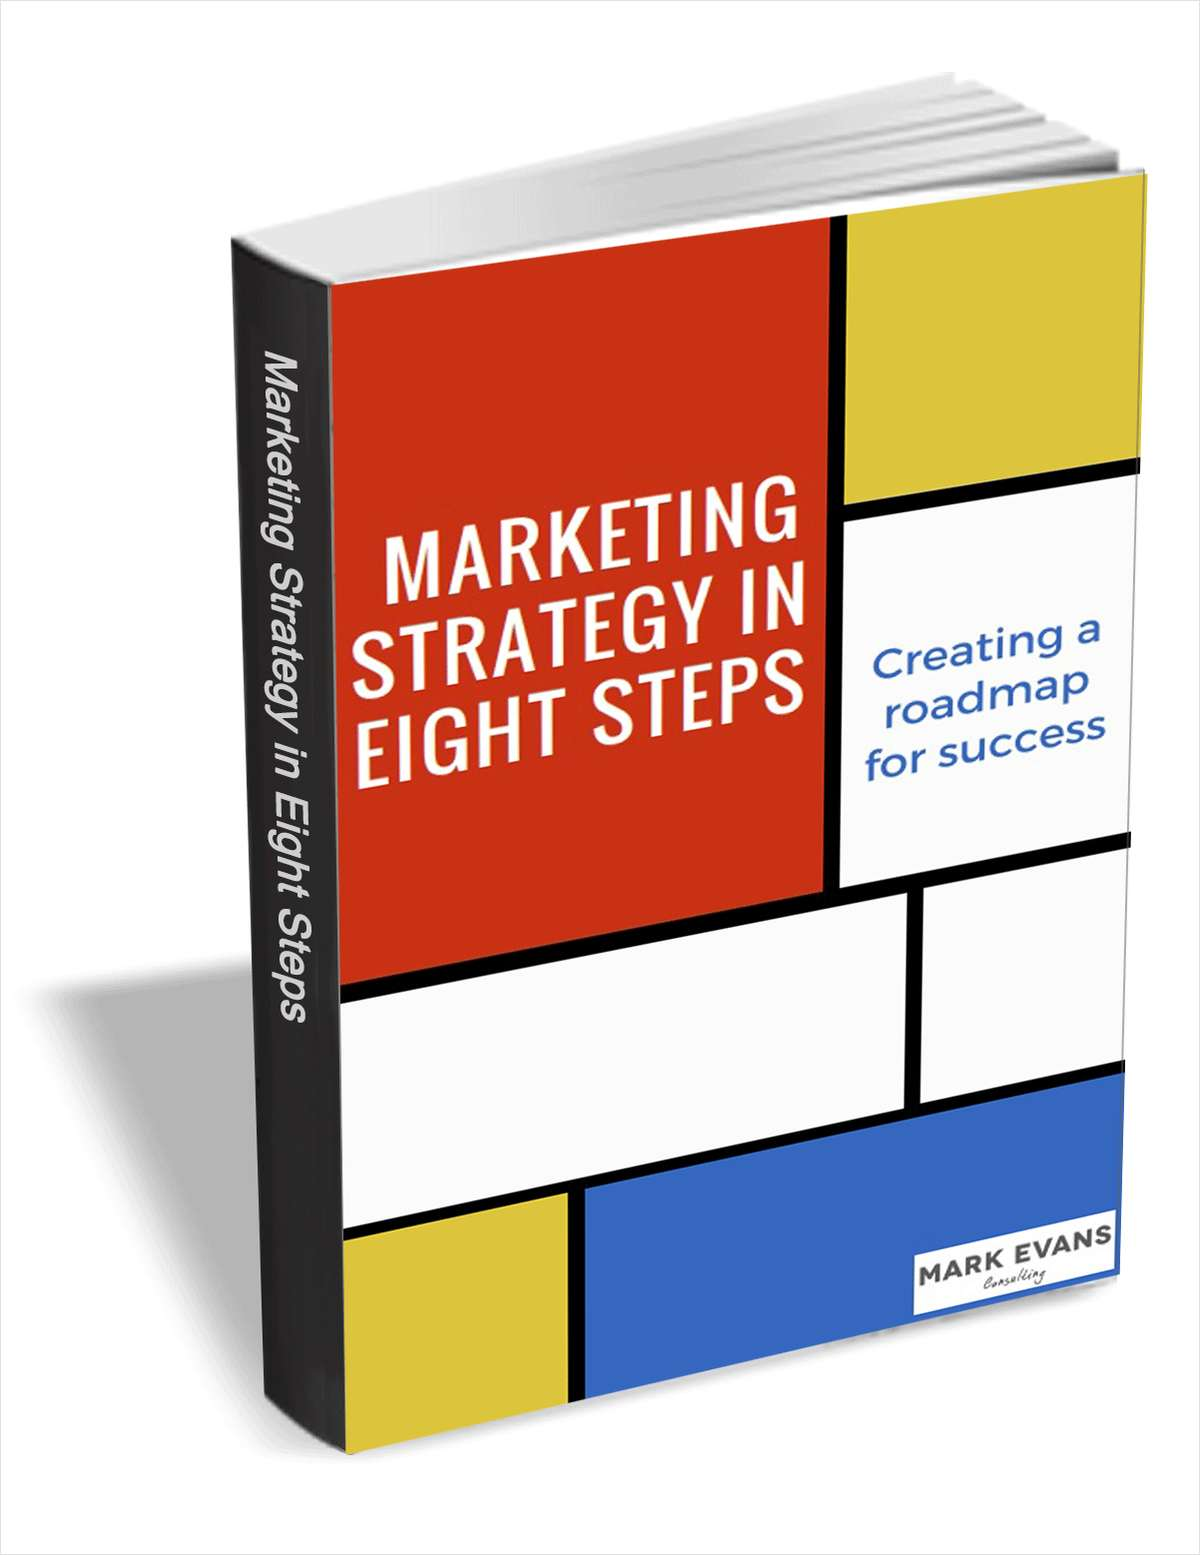 Marketing Strategy in Eight Steps - Creating a Roadmap for Success